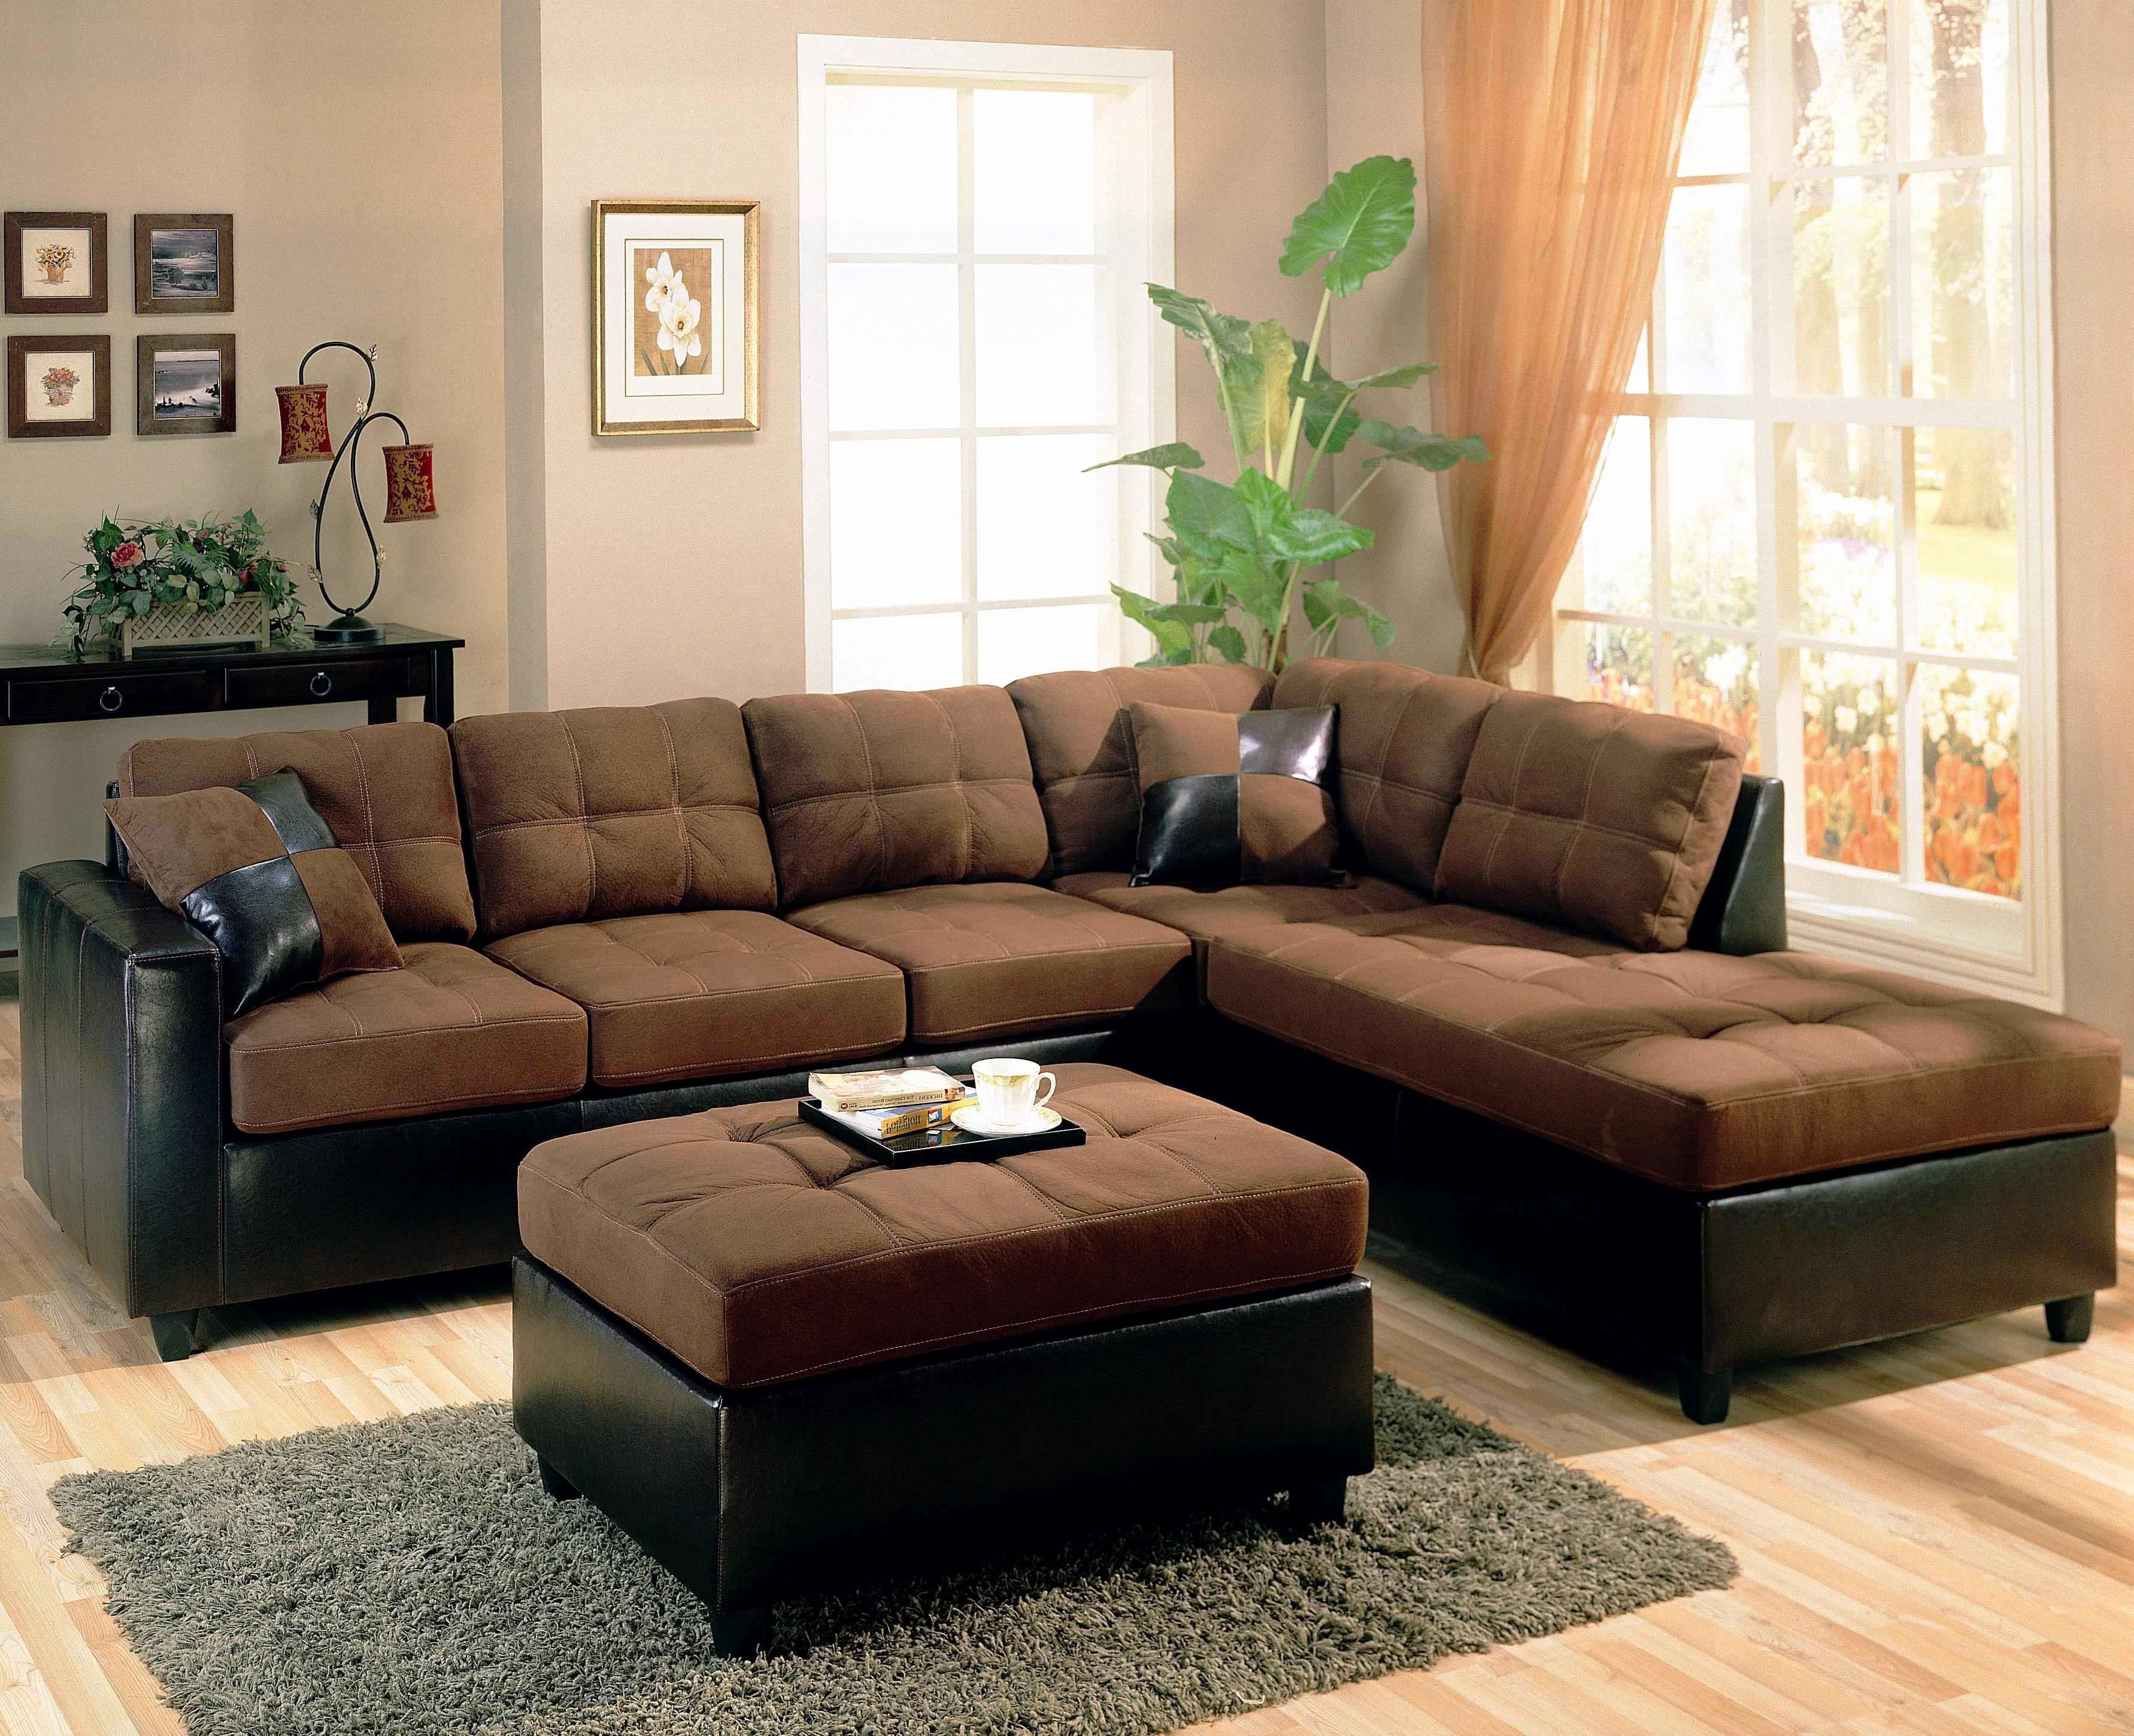 Ideas sofa Sets for Living Room Image sofa excellent sofa set